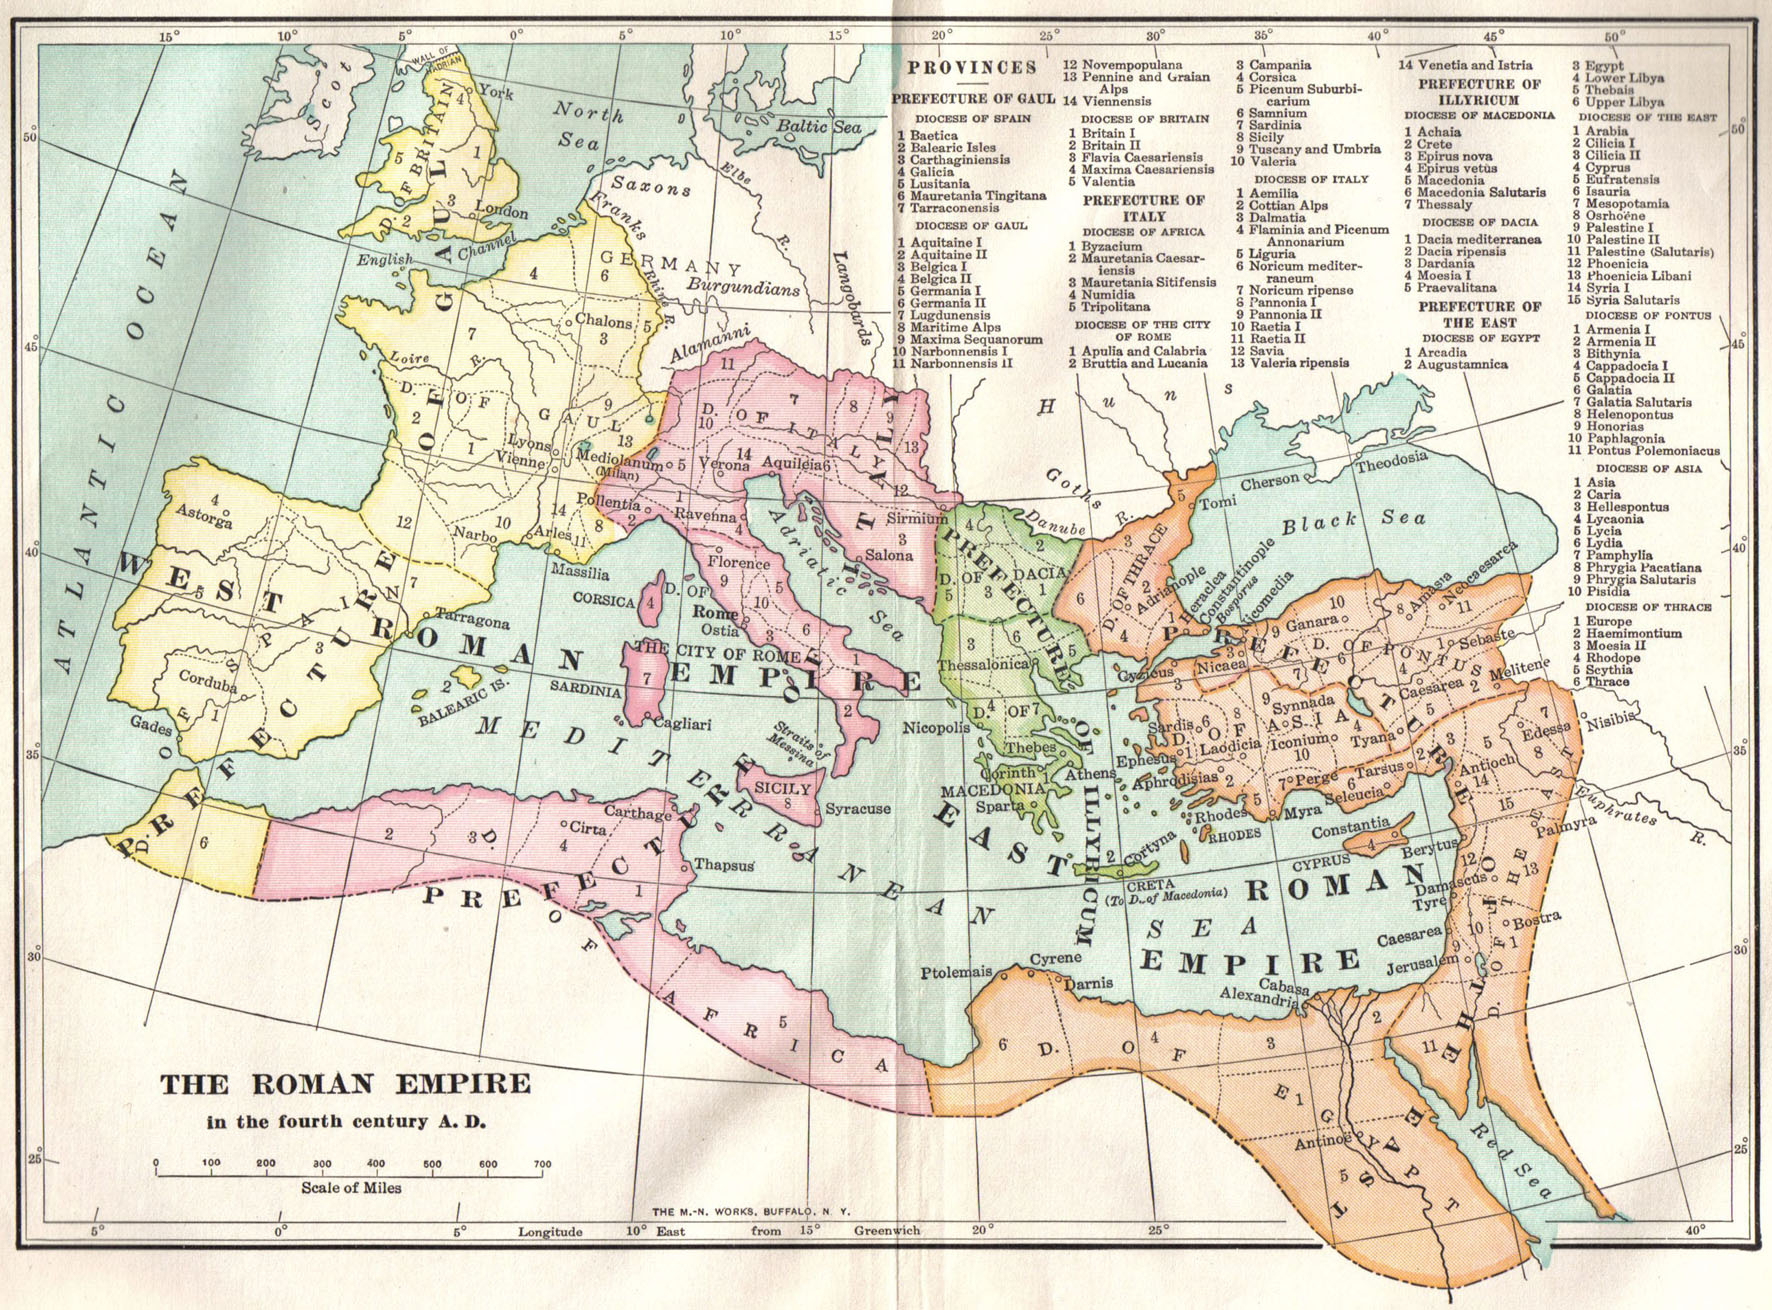 A SURVEY OF ANCIENT HISTORY TO THE DEATH OF CONSTANTINE